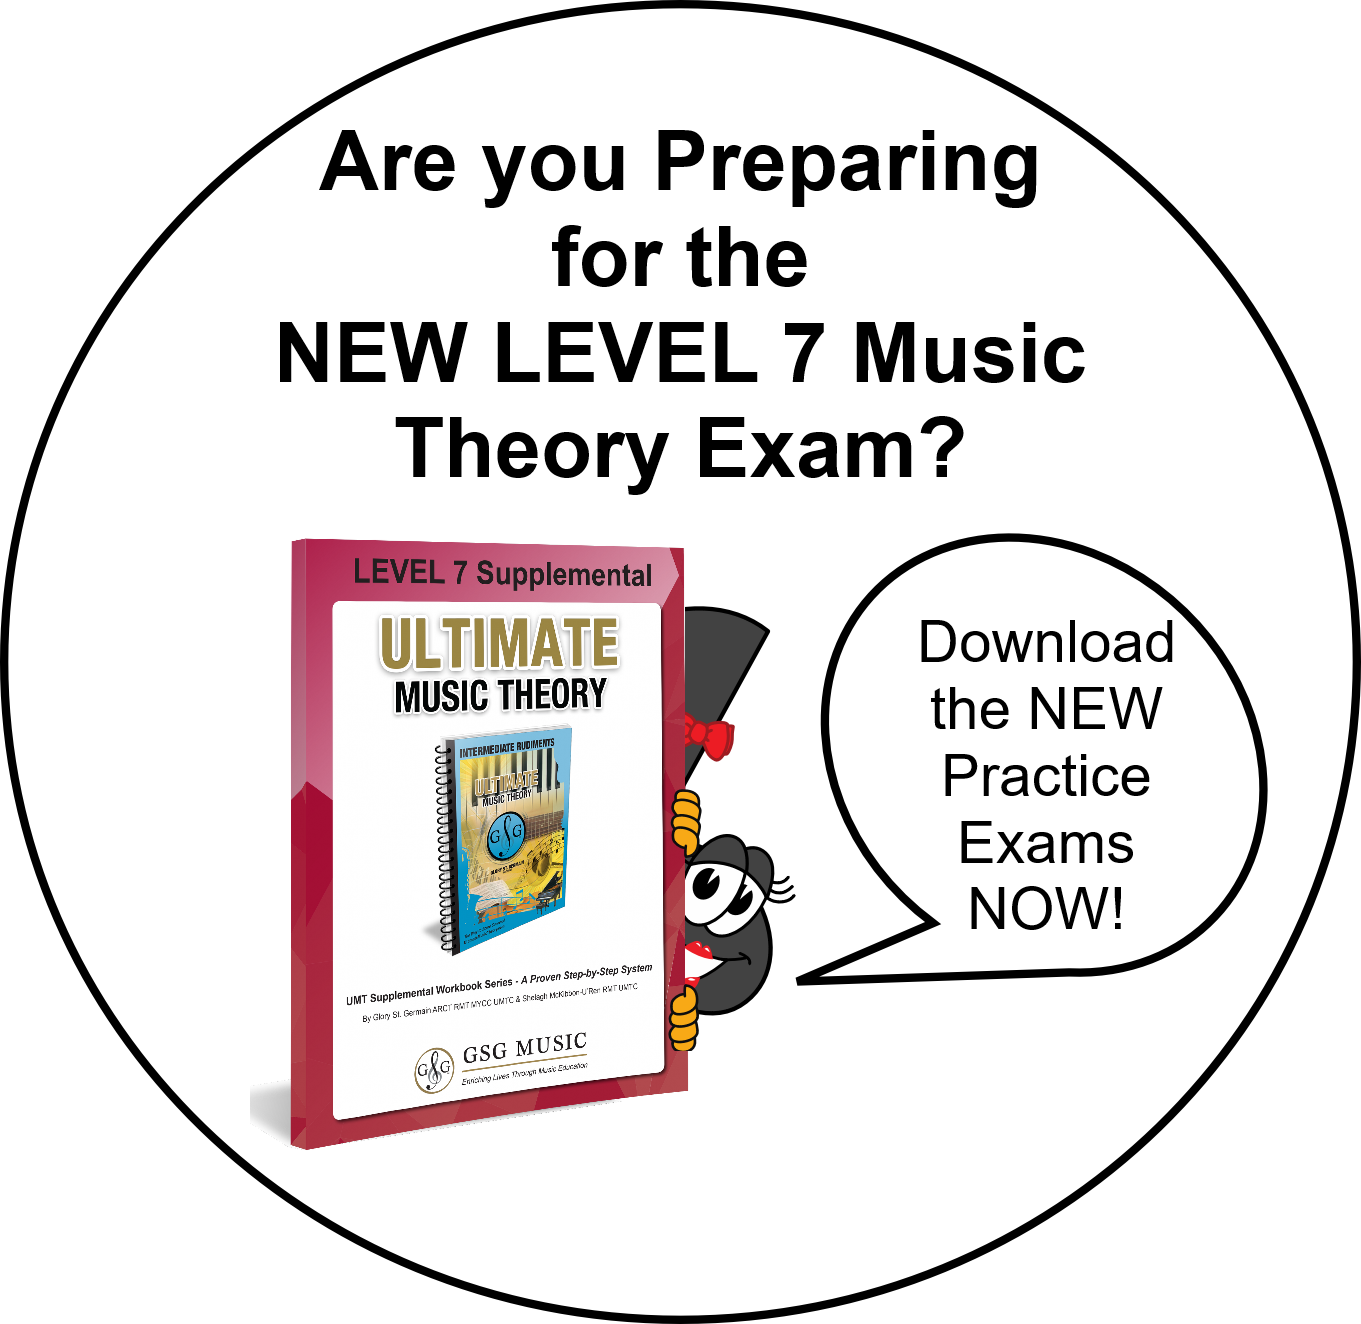 Ultimate Music Theory The New Level 7 Music Theory Exam